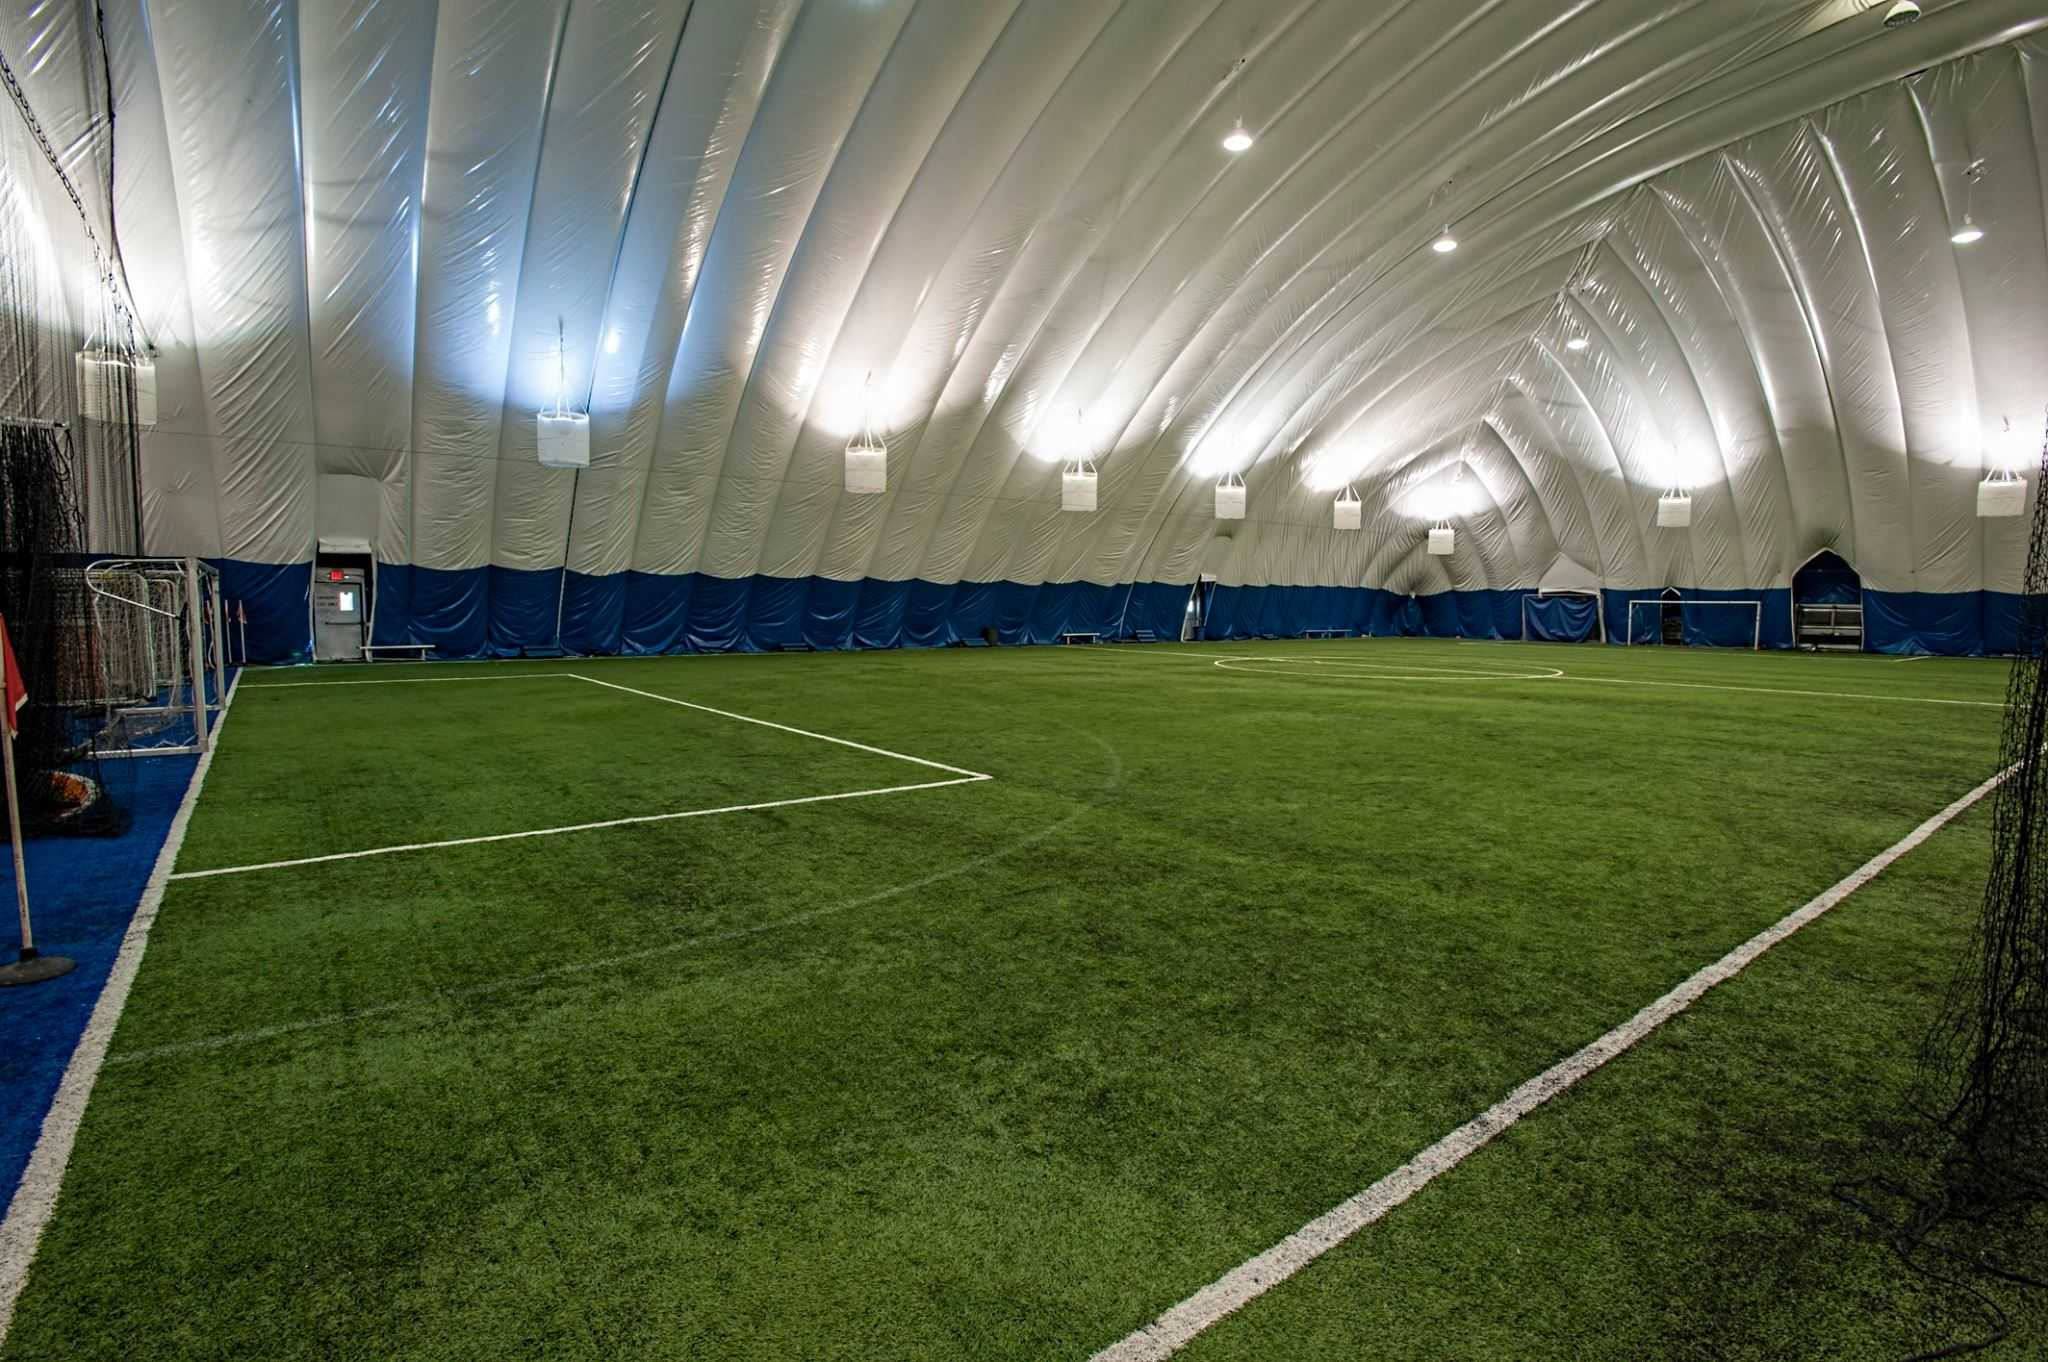 Nj Indoor Soccer Turf Rentals Indoor Soccer Fields New